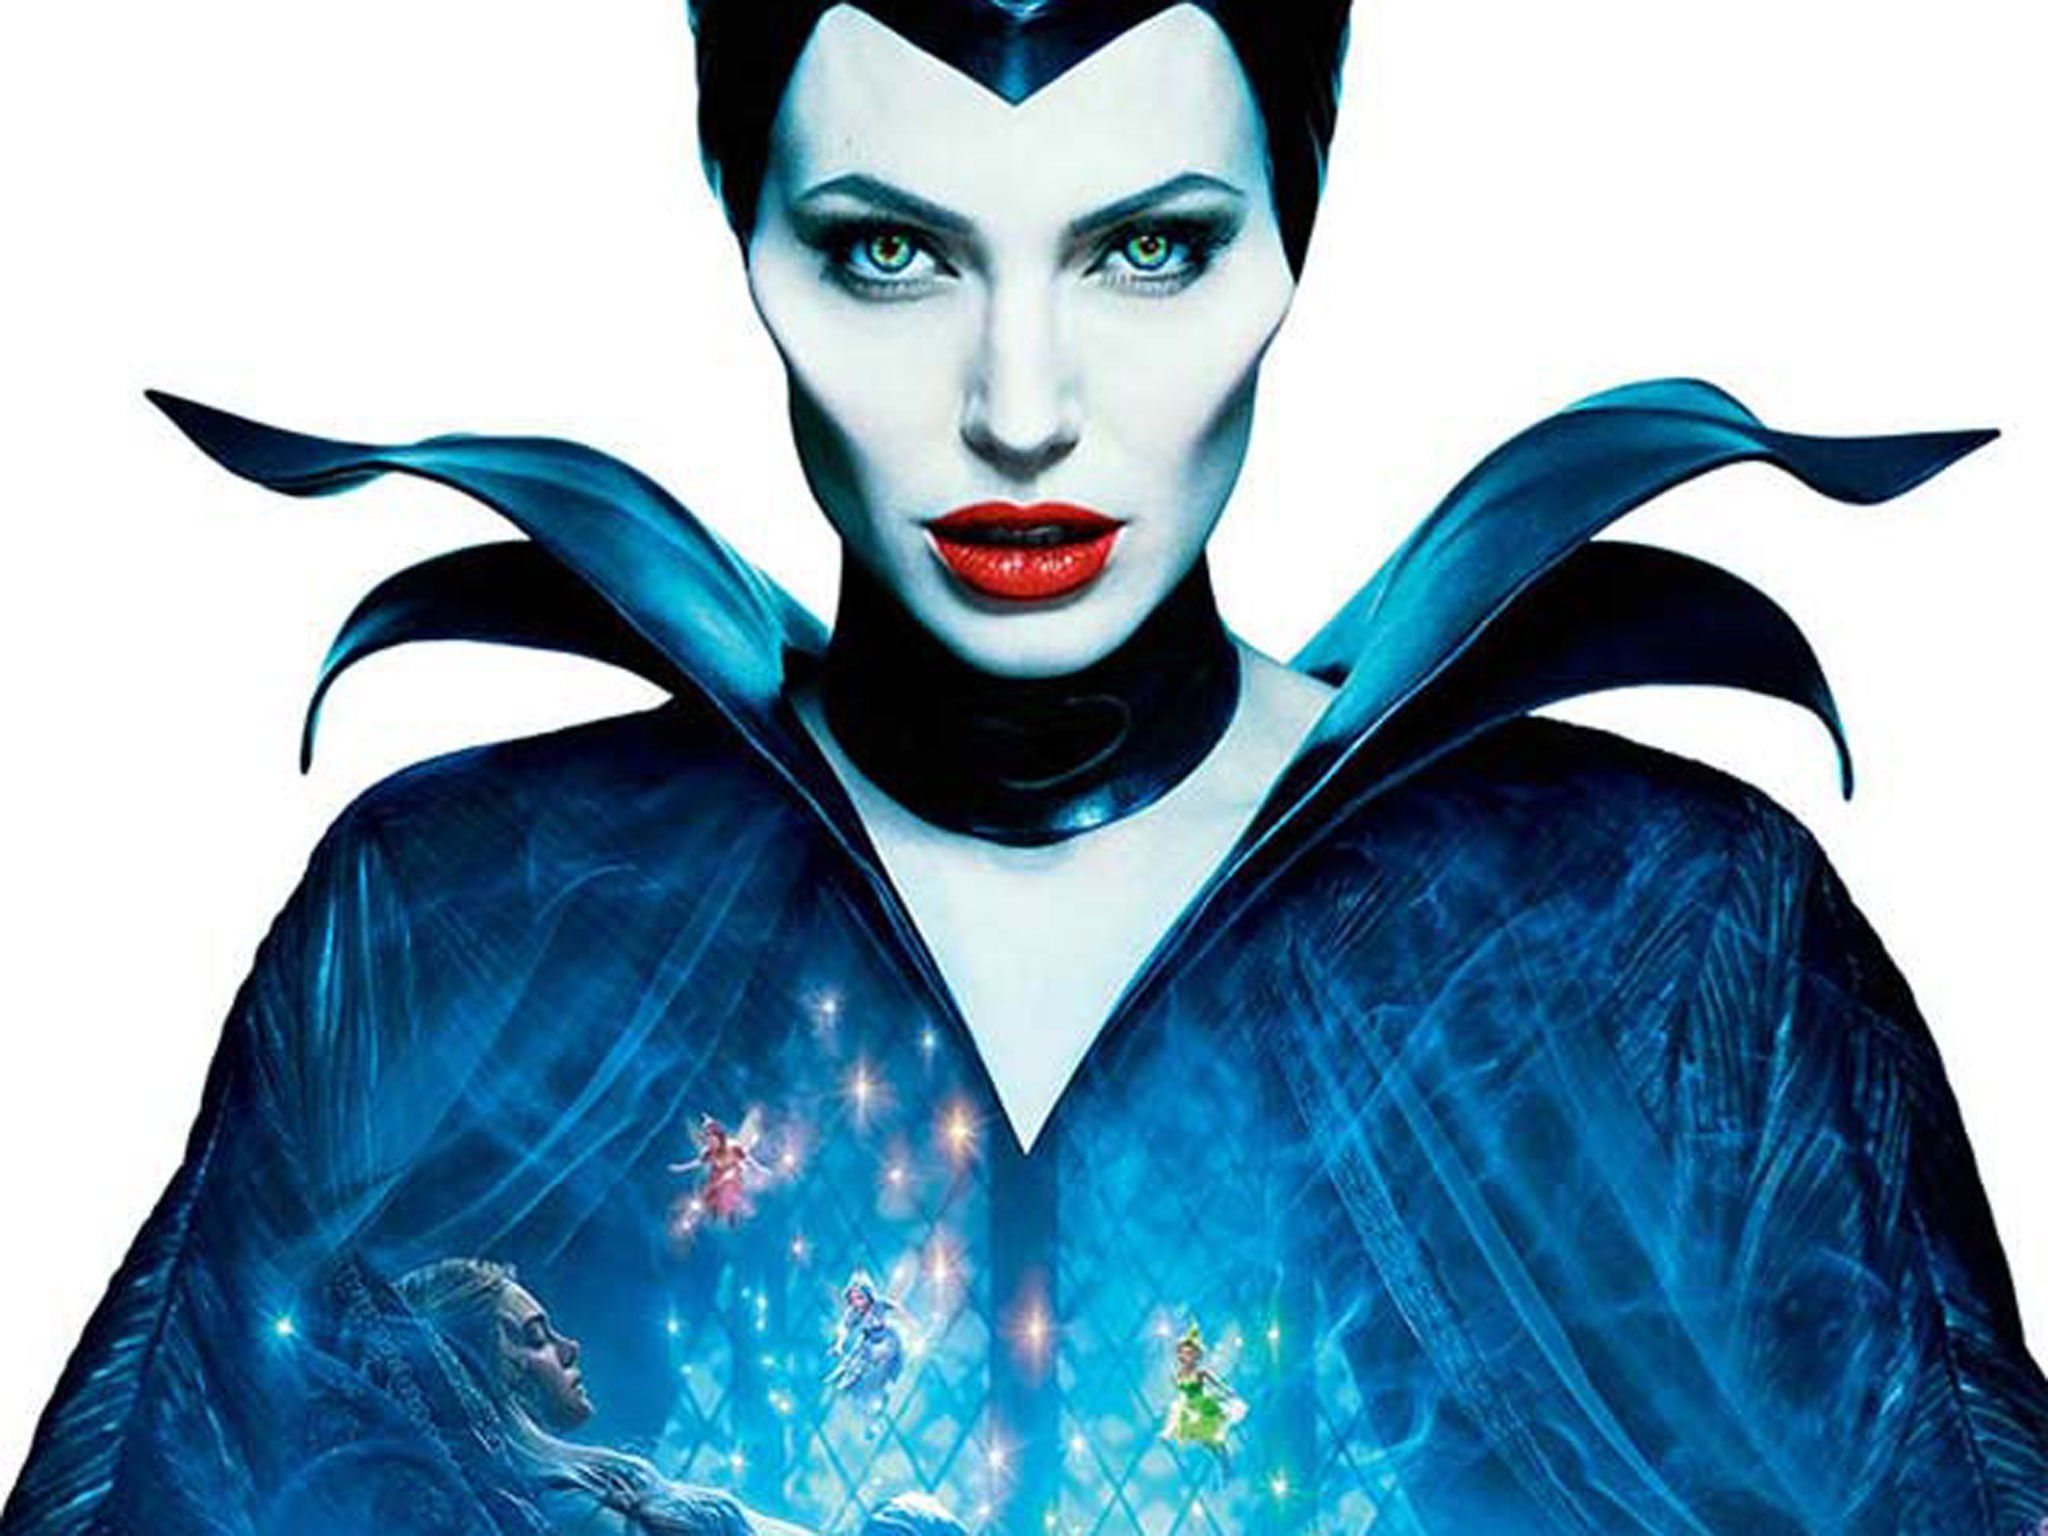 New Angelina Jolie Maleficent Disney Wallpaper Hd For